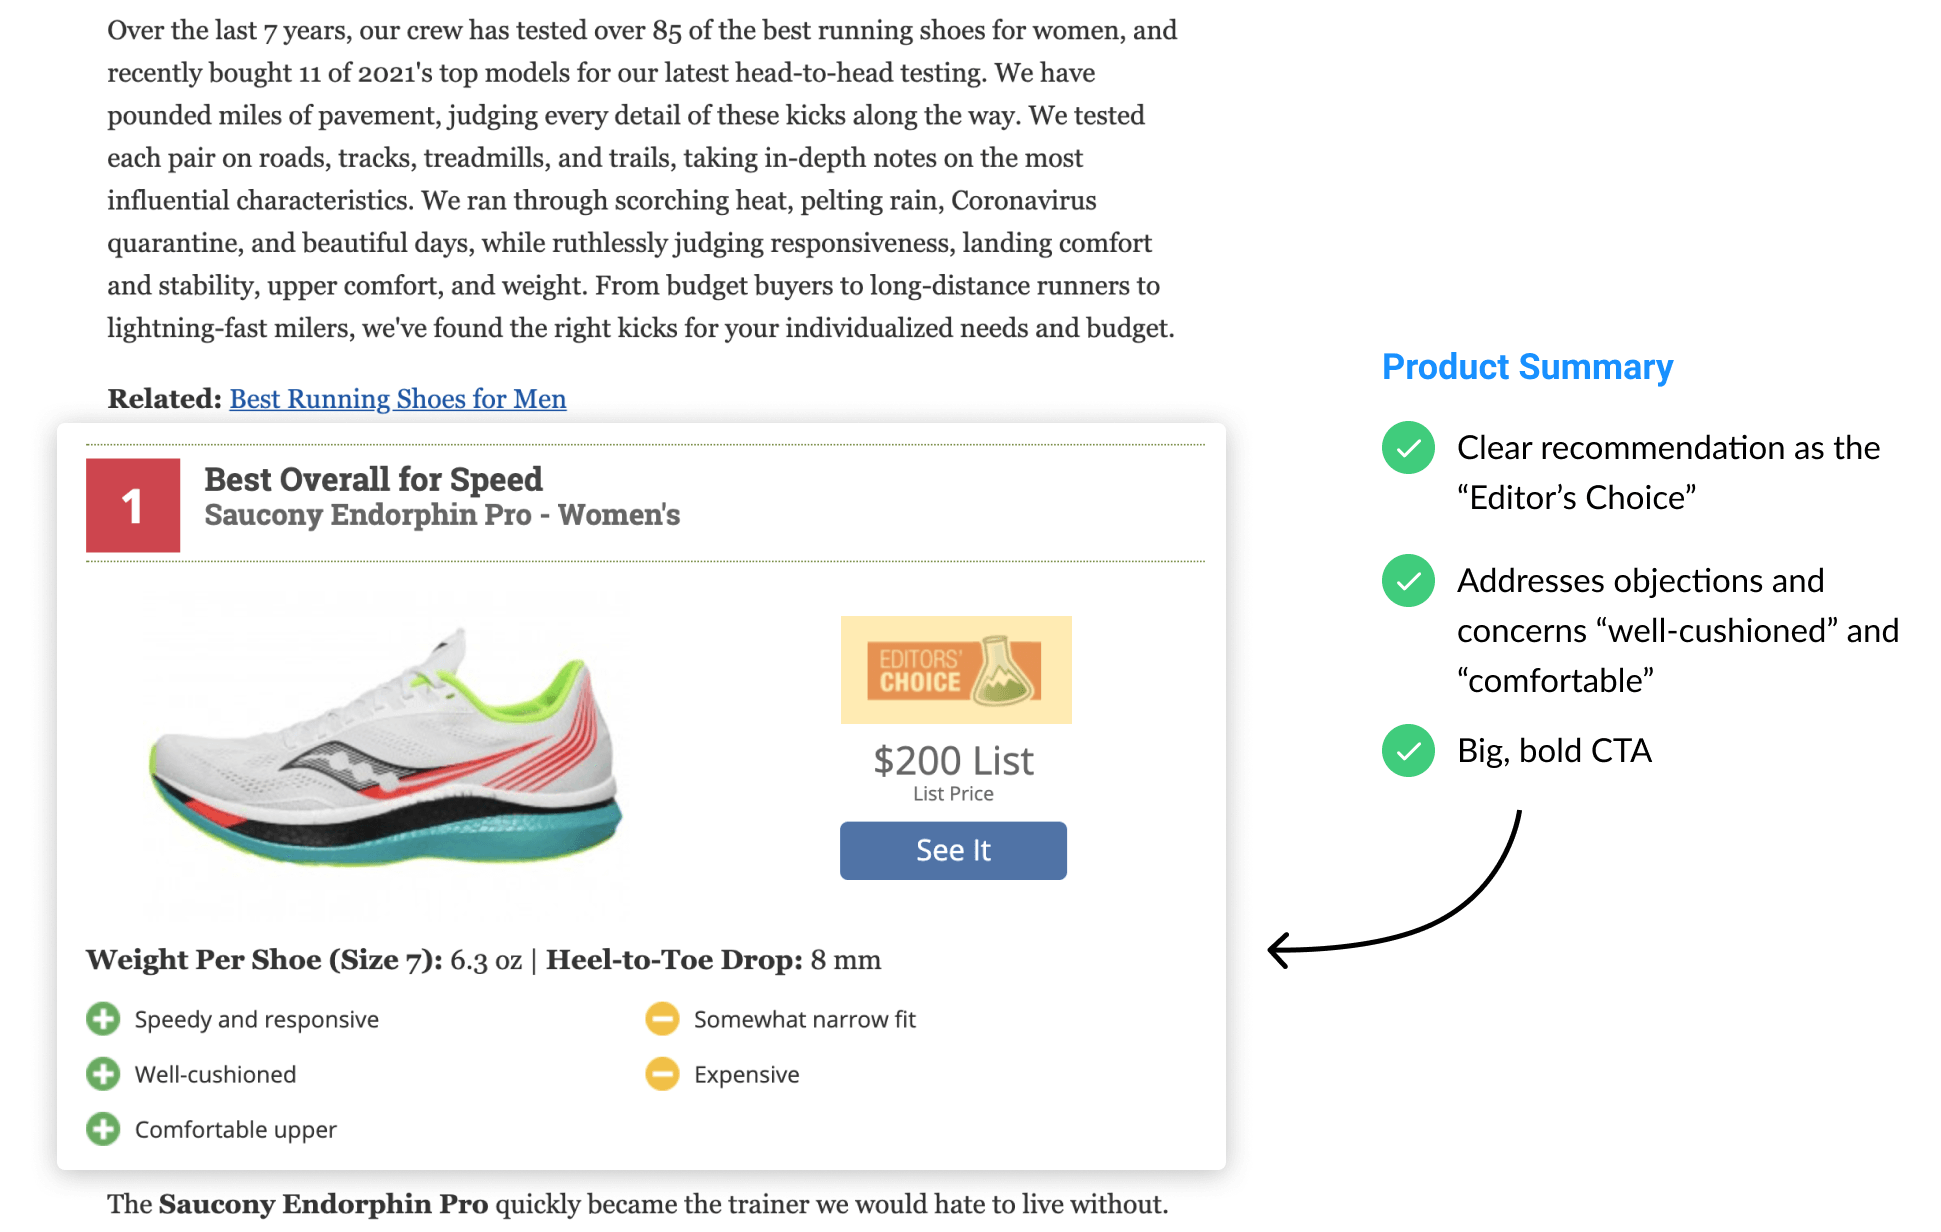 Product Review Example